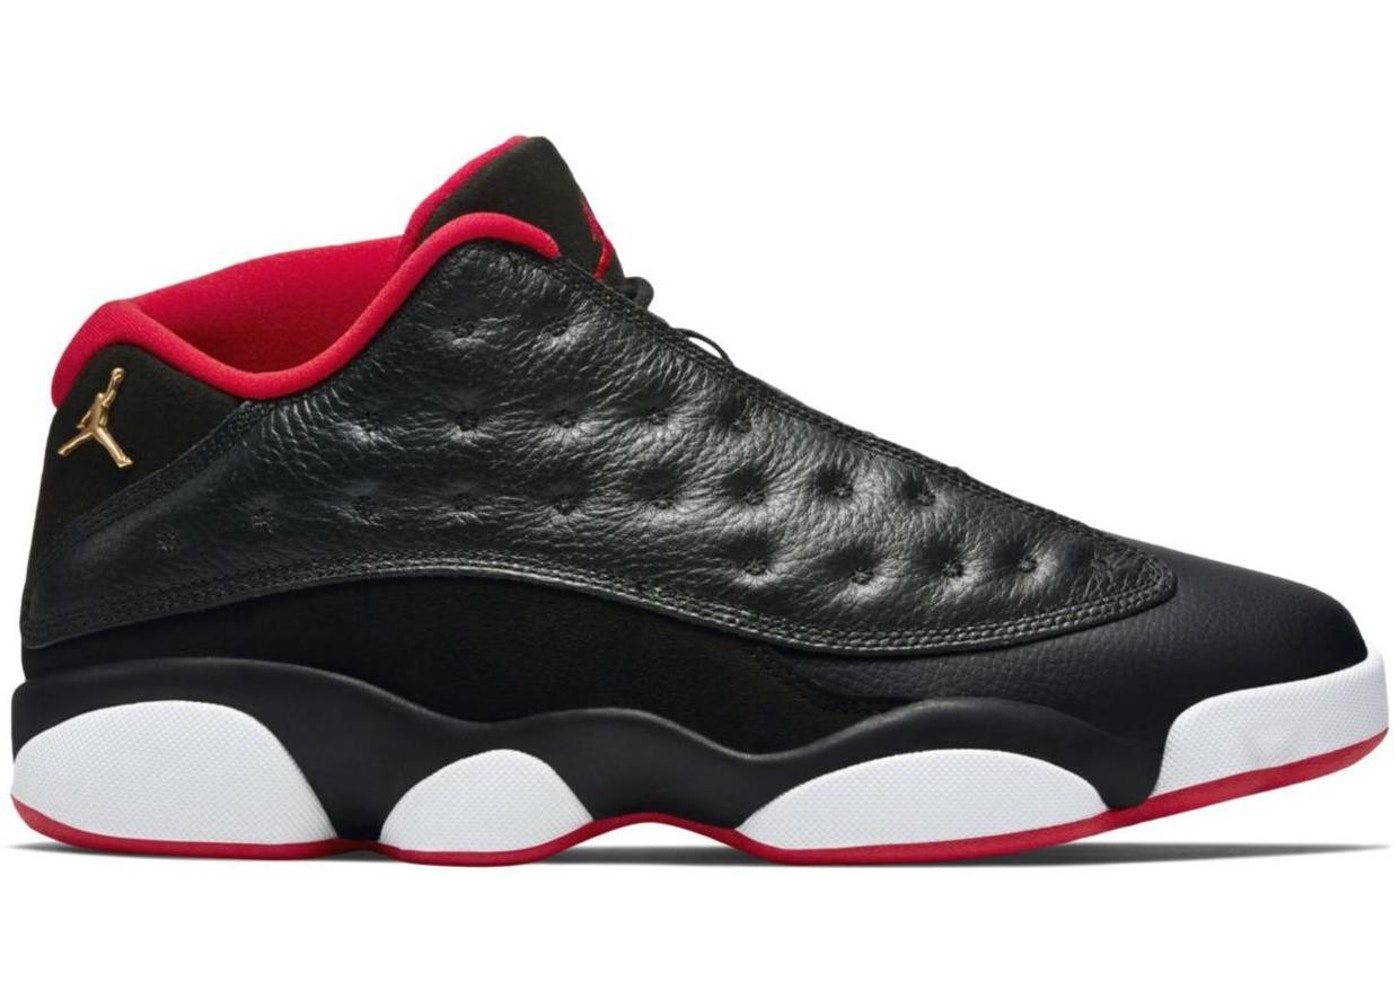 super popular 4cd72 3fcad Jordan 13 Retro Low Bred